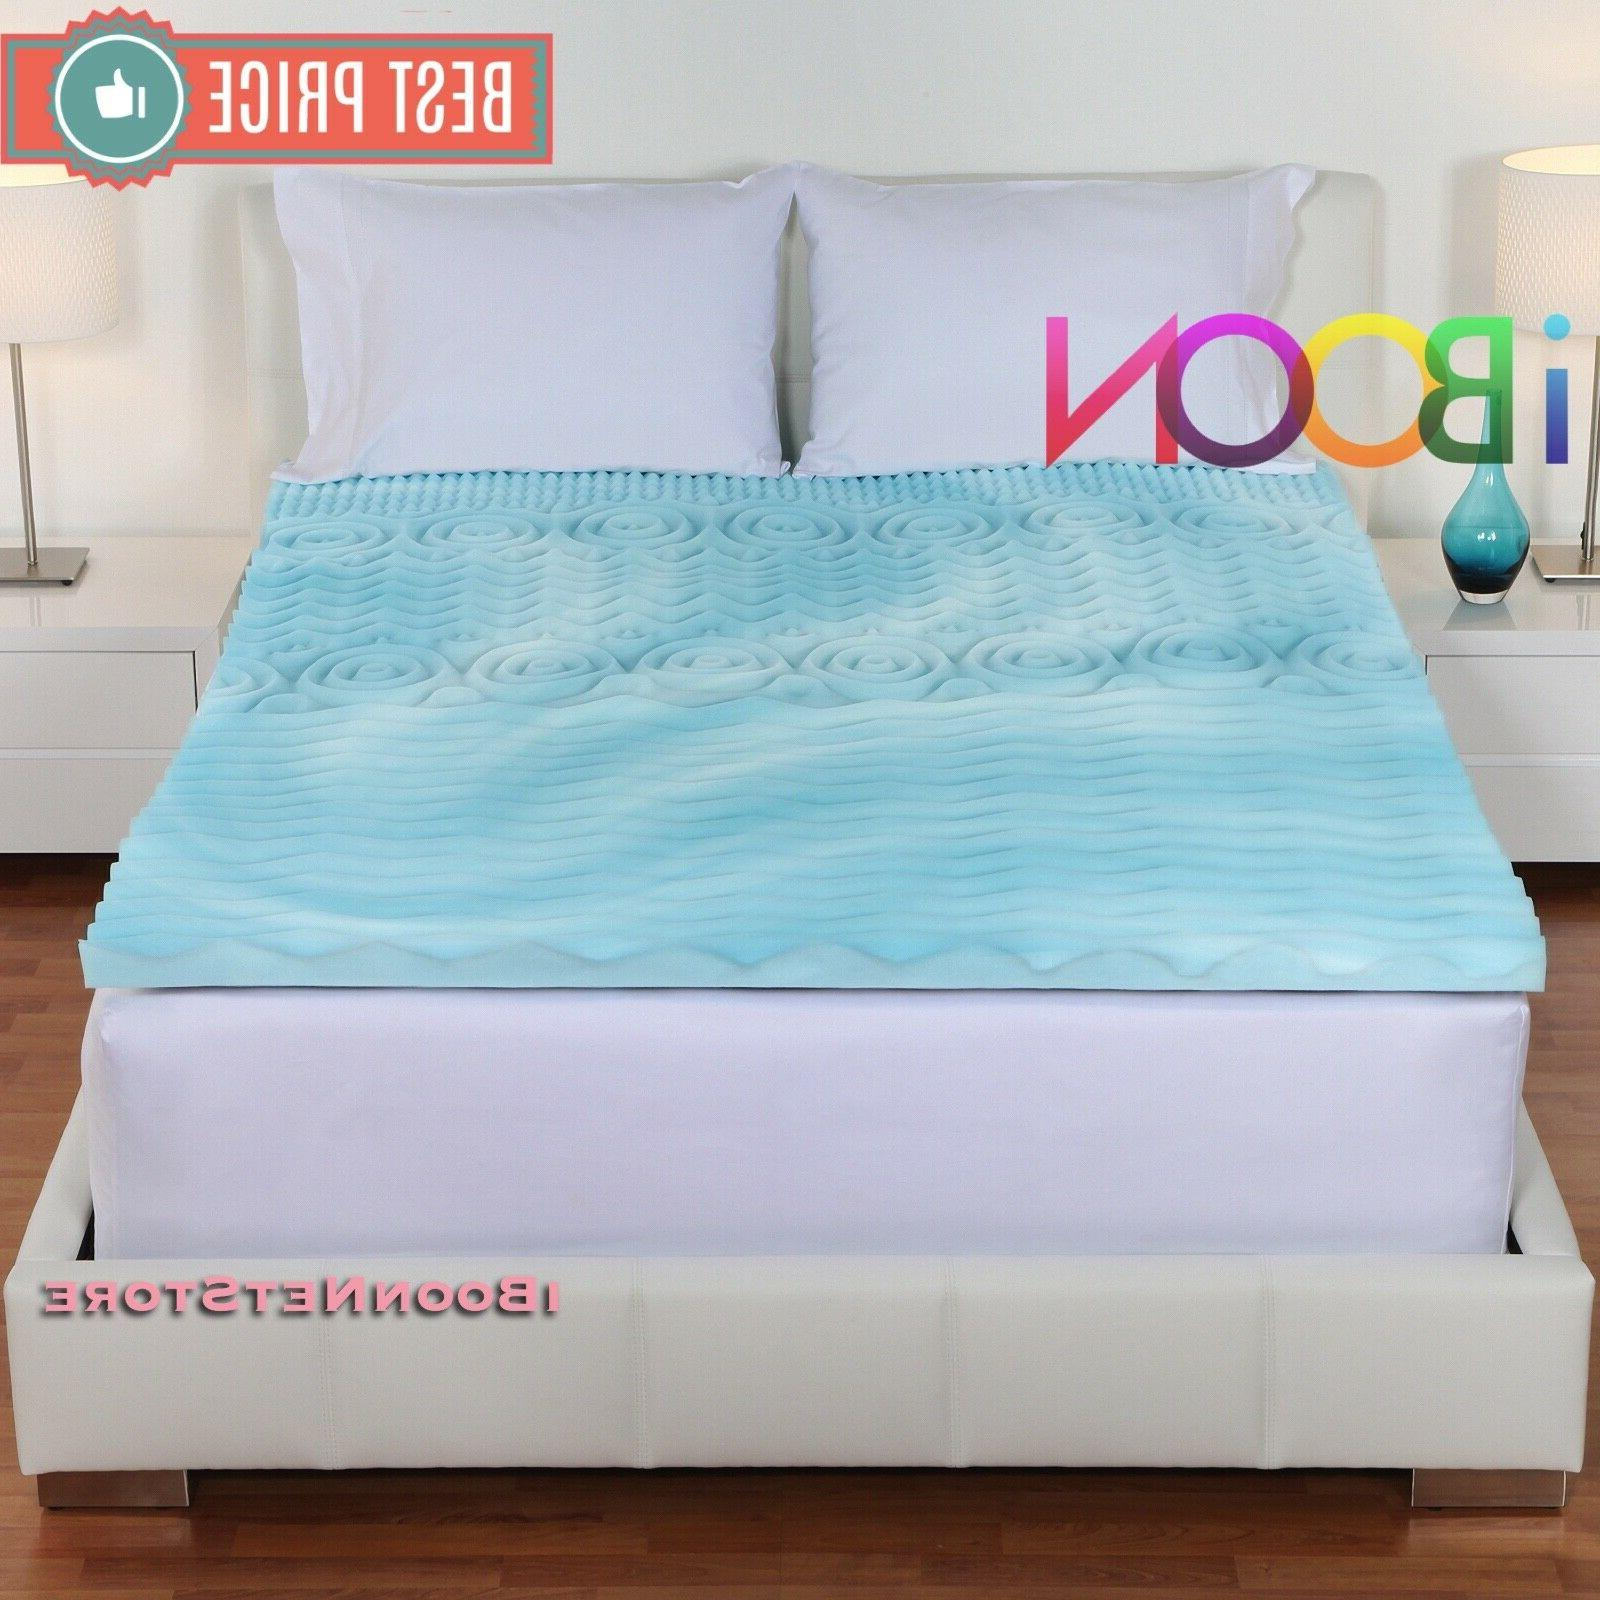 Orthopedic 3 Memory Queen Bed Cover